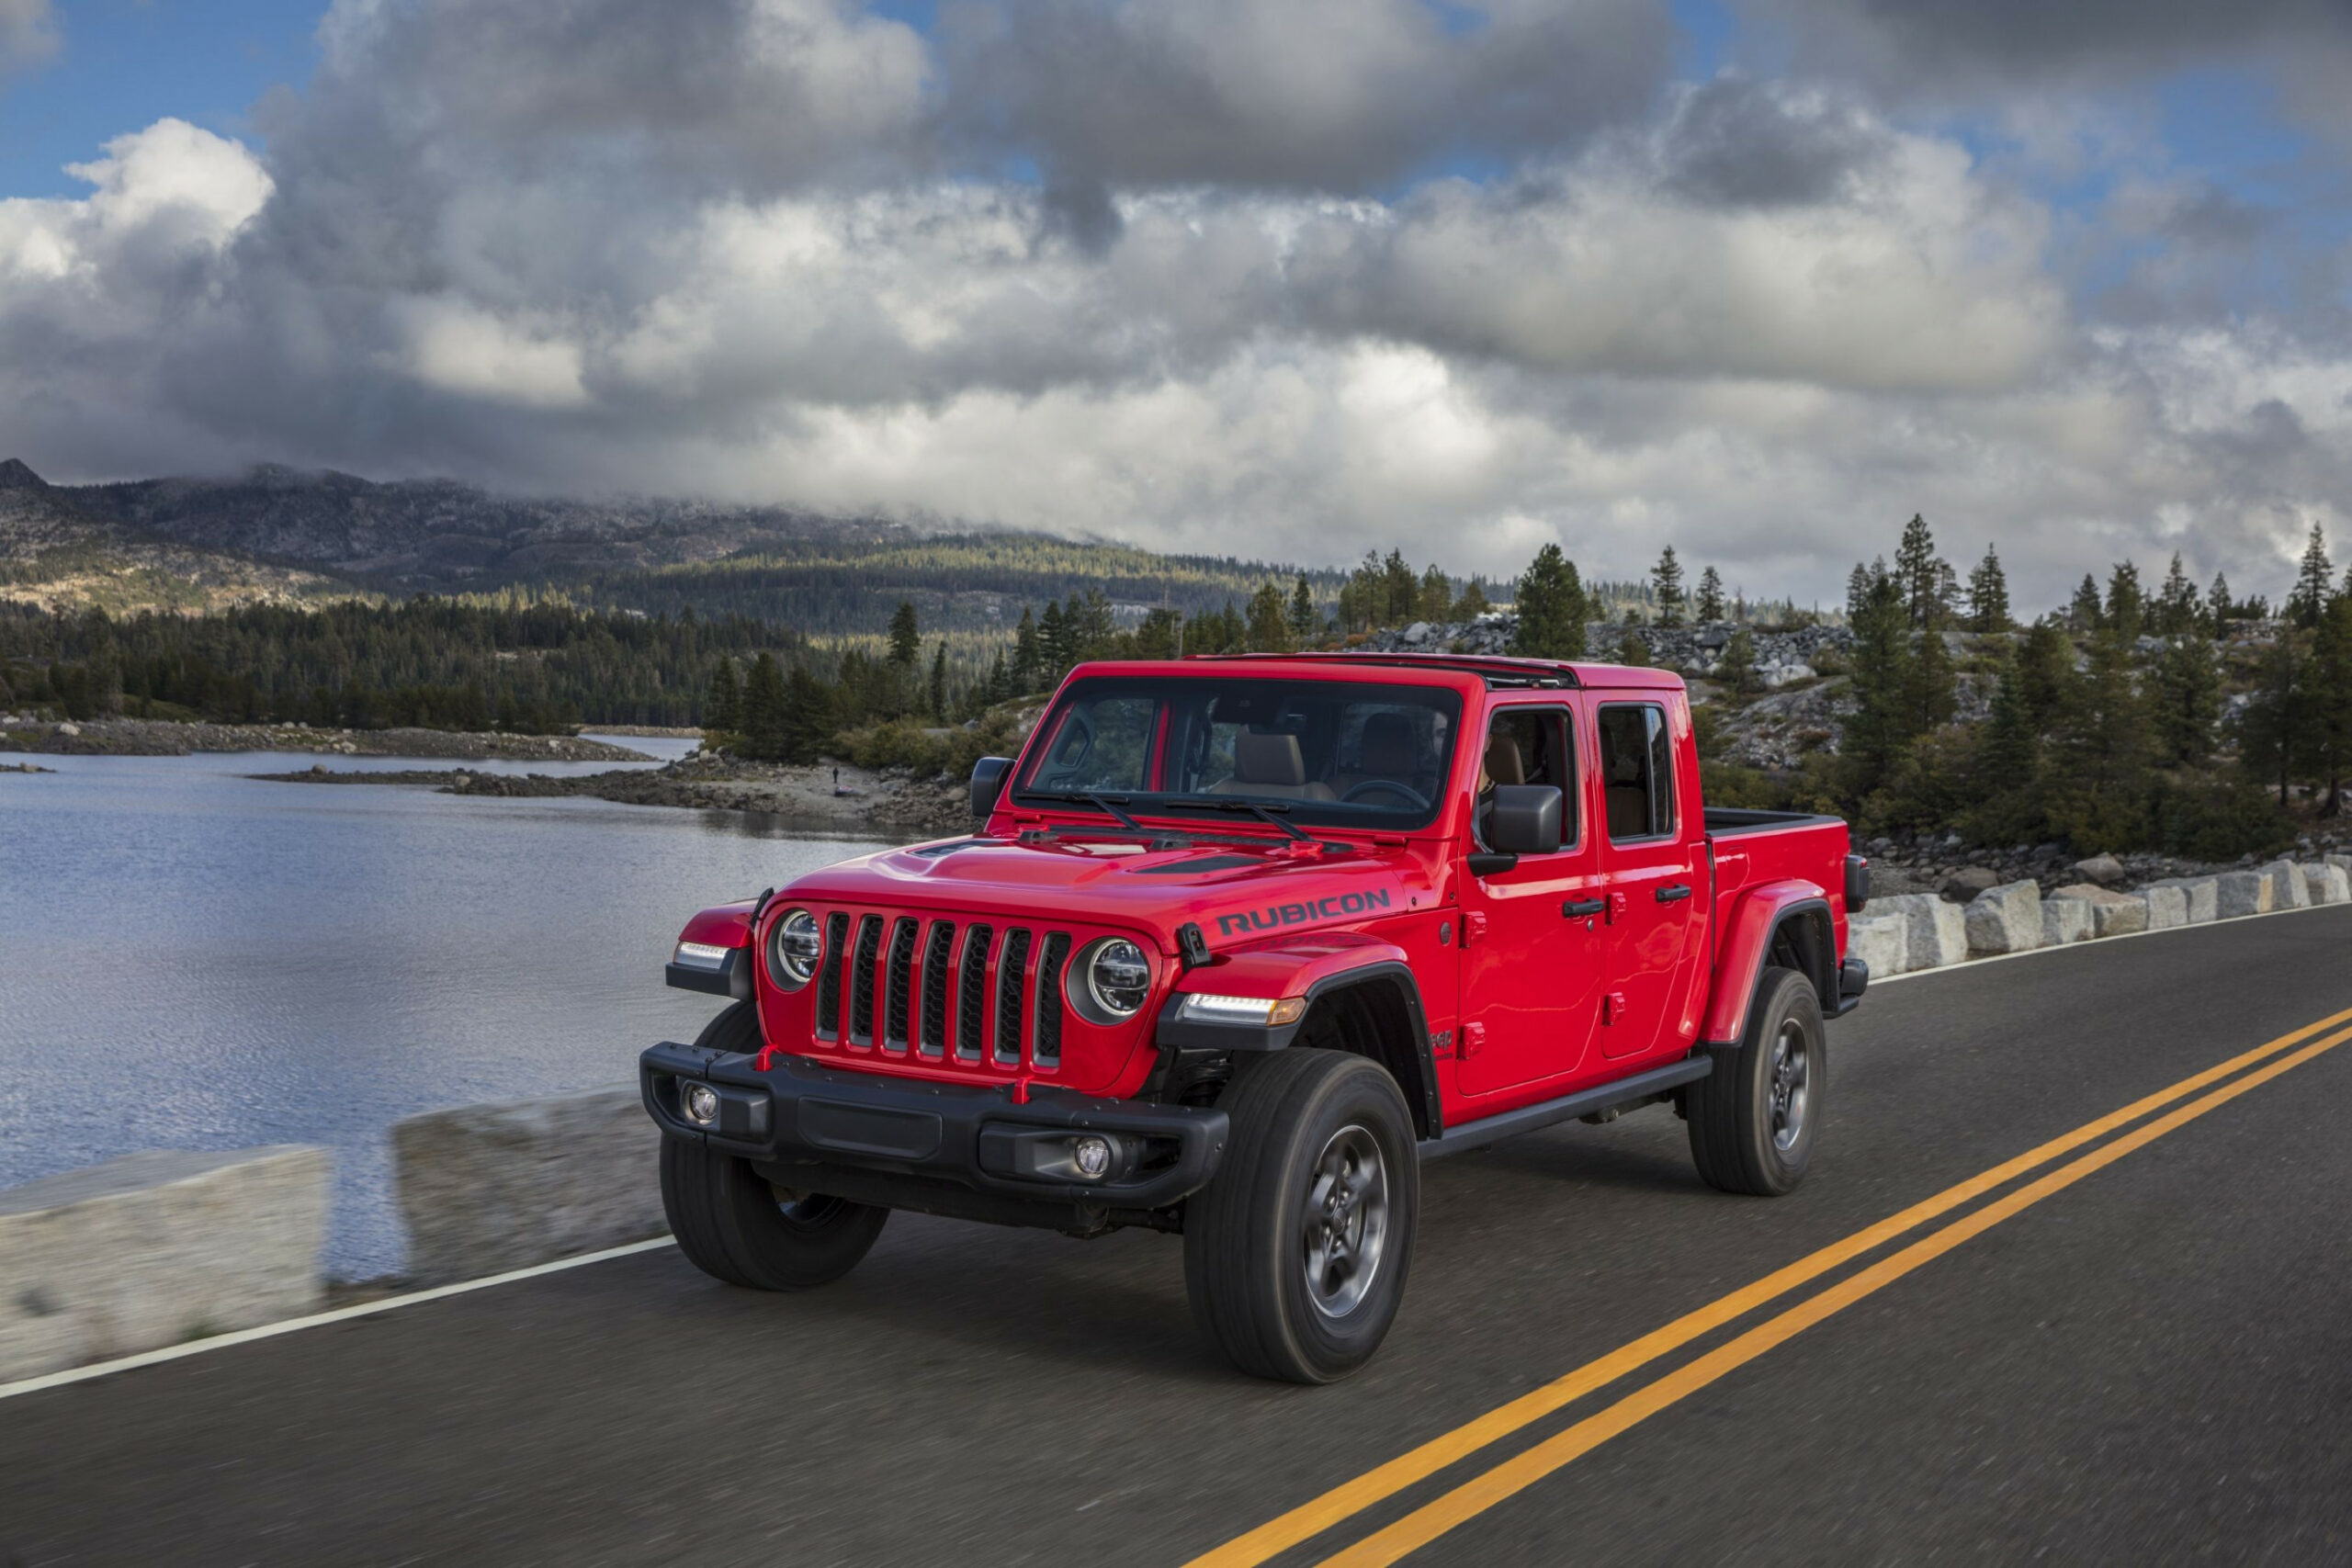 Specs 2022 Jeep Gladiator Overall Length